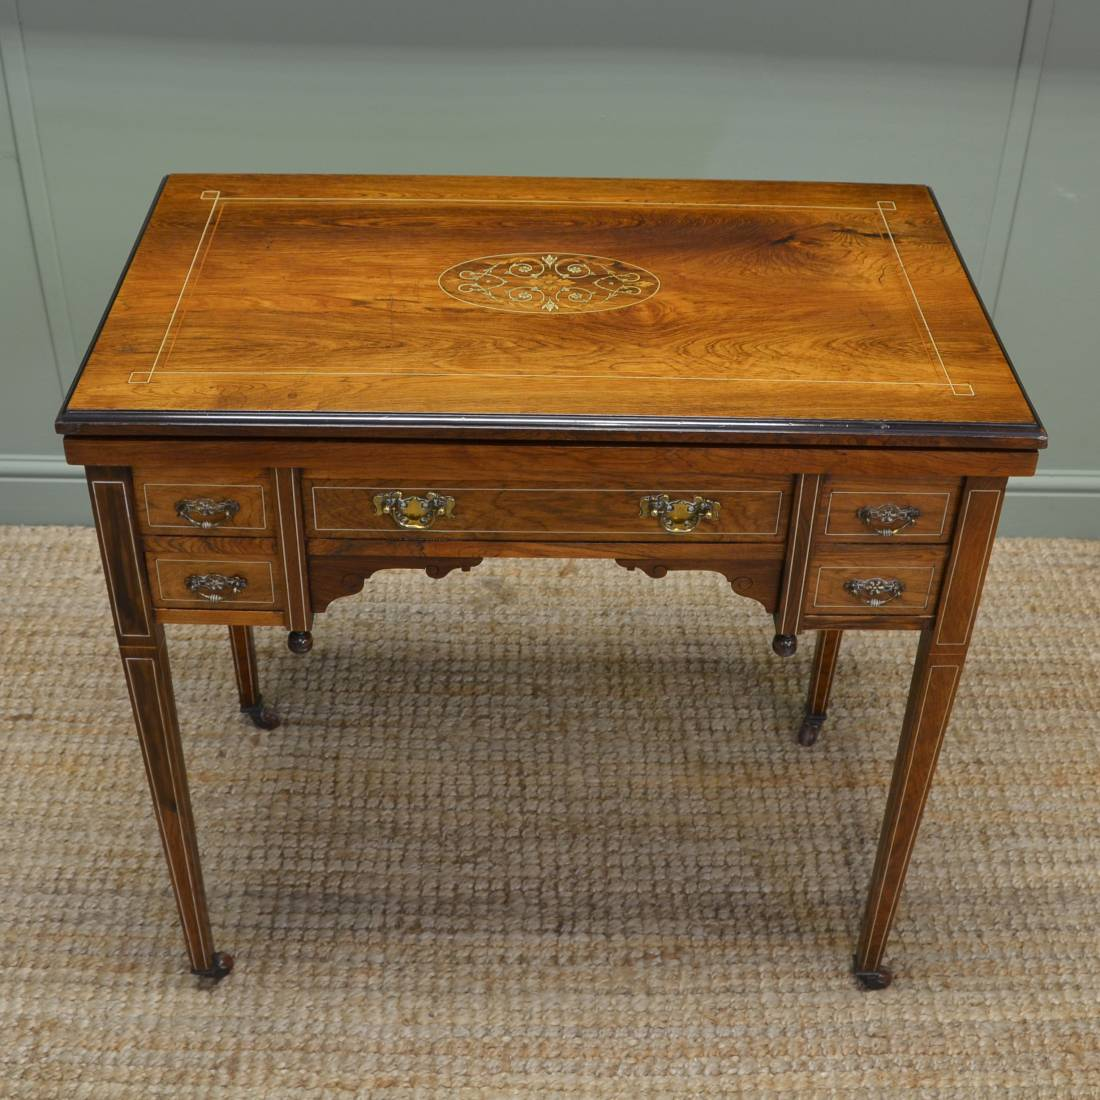 Unusual Desk Unusual Inlaid Rosewood Antique Victorian Writing Desk Games